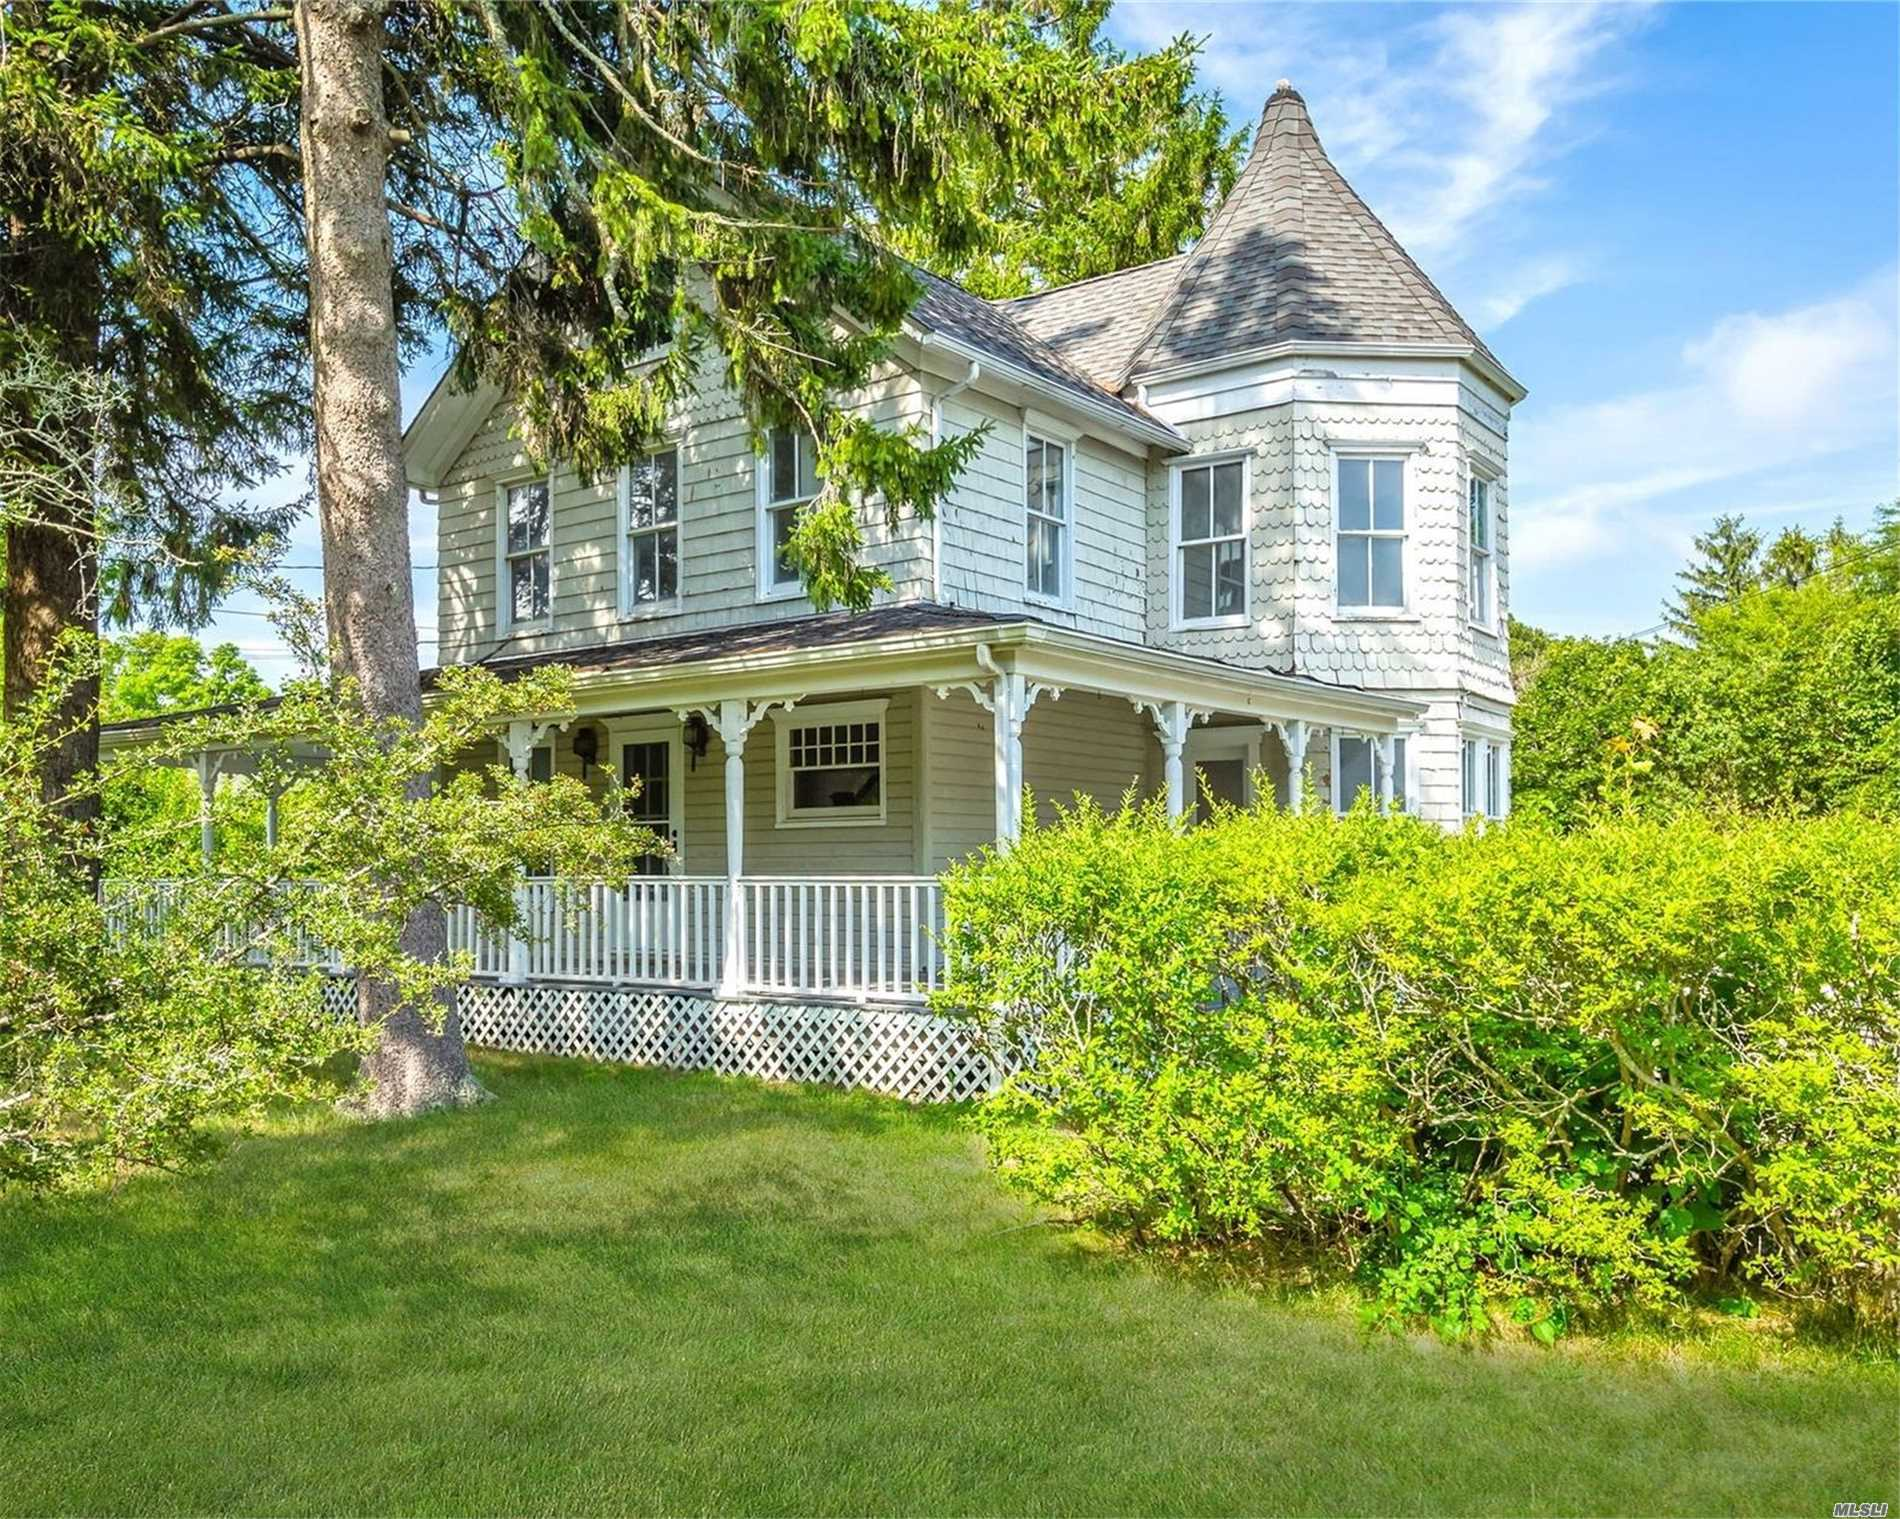 41 Ponquogue Ave - Hampton Bays, New York